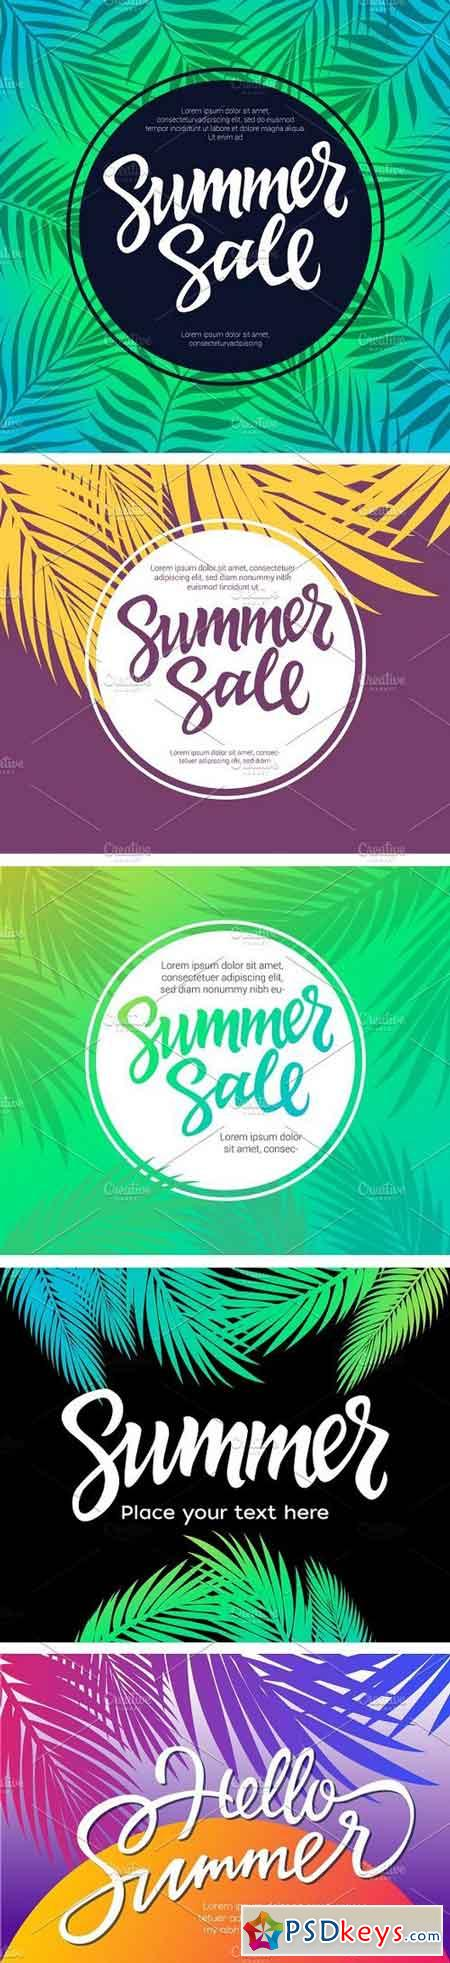 Summer Bundle - 19 Templates 1639148